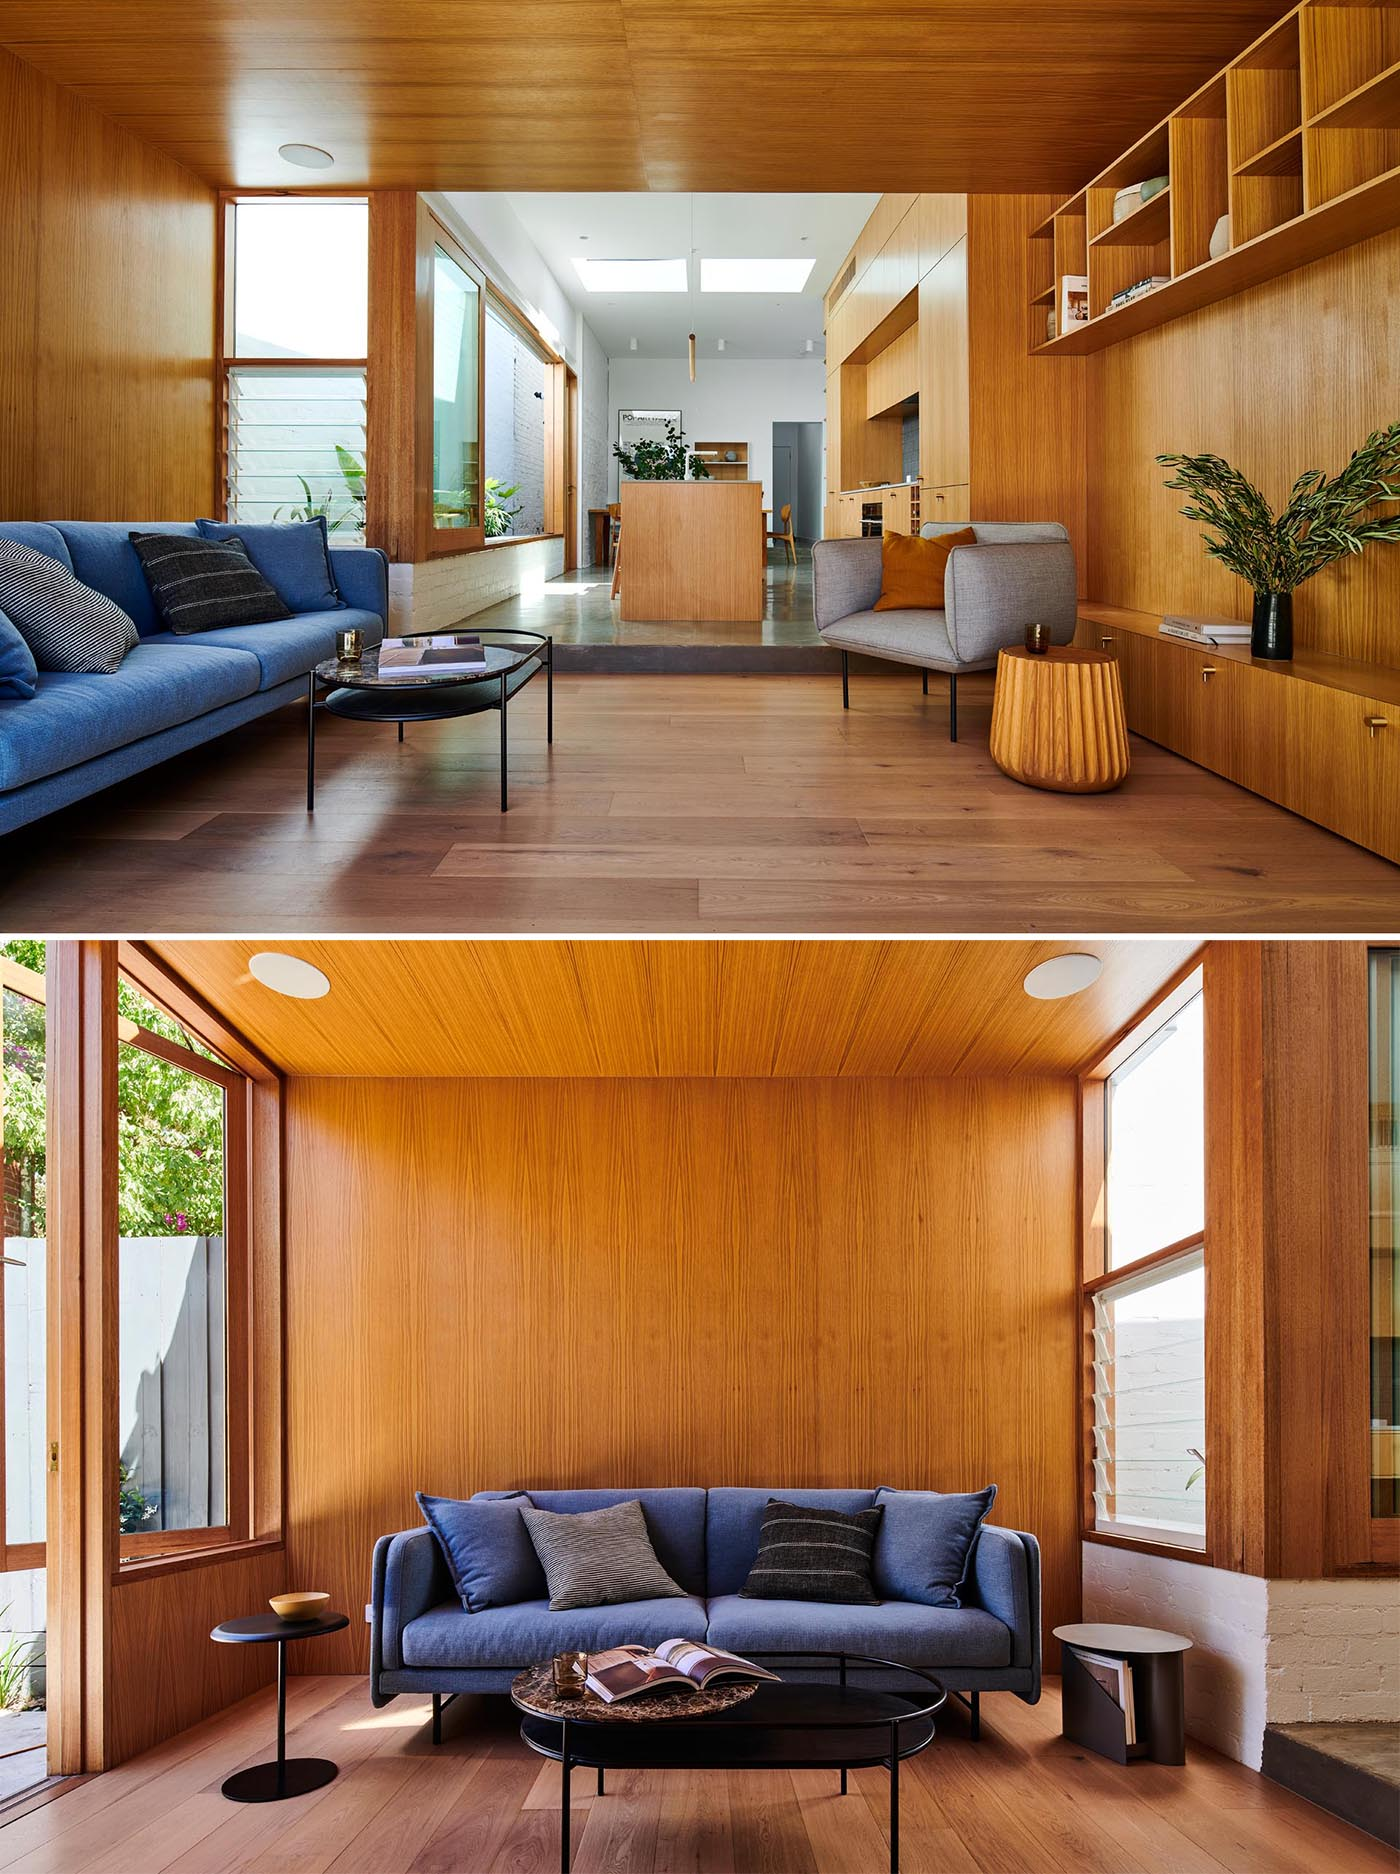 A modern sitting area, which opens to the backyard, includes wood walls, louver windows, shelving, and a colorful blue couch.